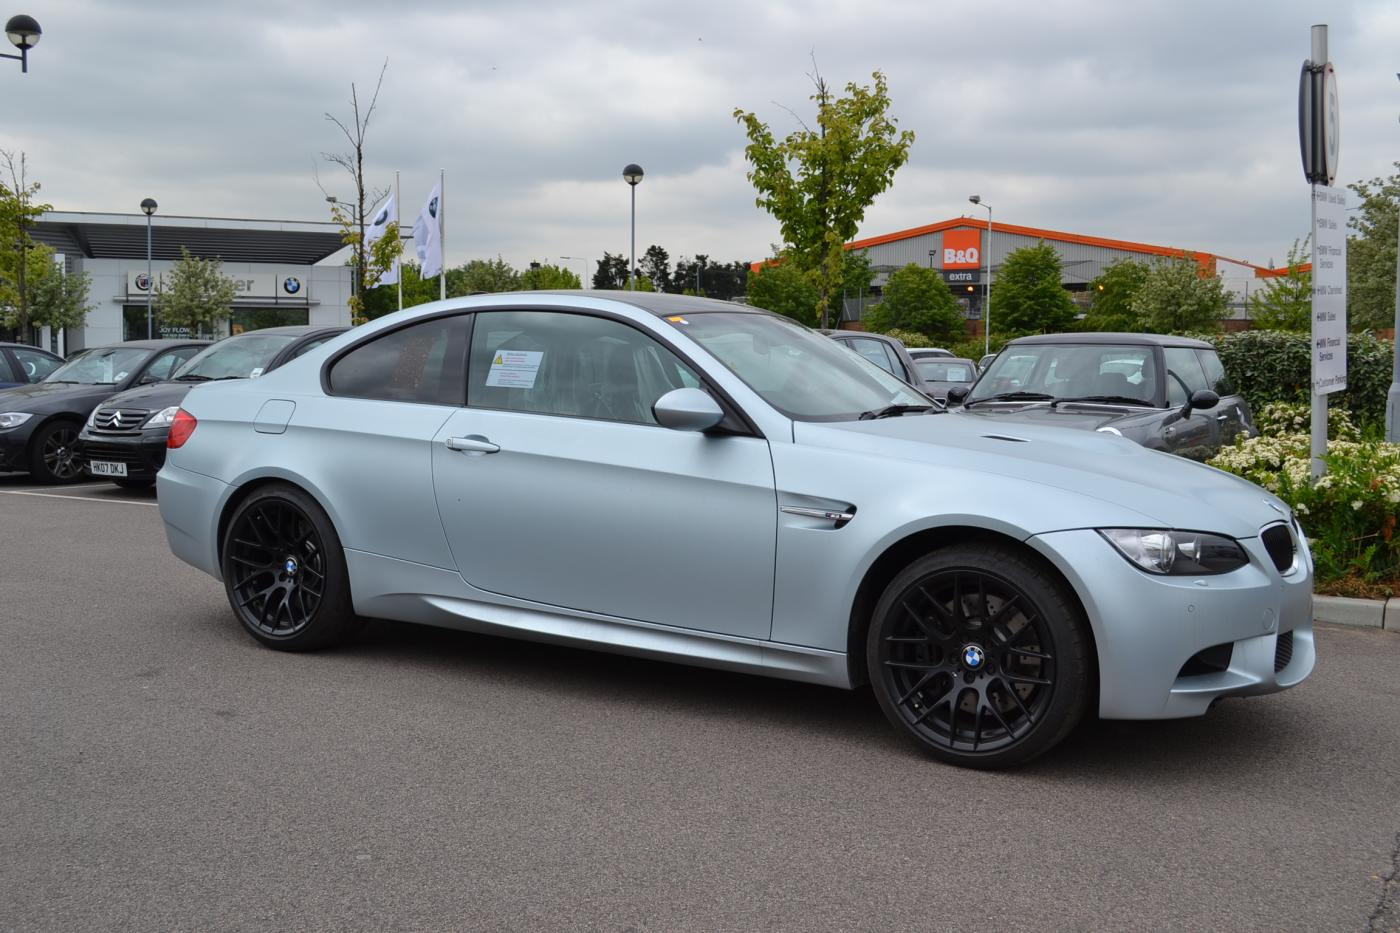 new frozen silver e92 m3 the m3cutters uk bmw m3 group forum. Black Bedroom Furniture Sets. Home Design Ideas